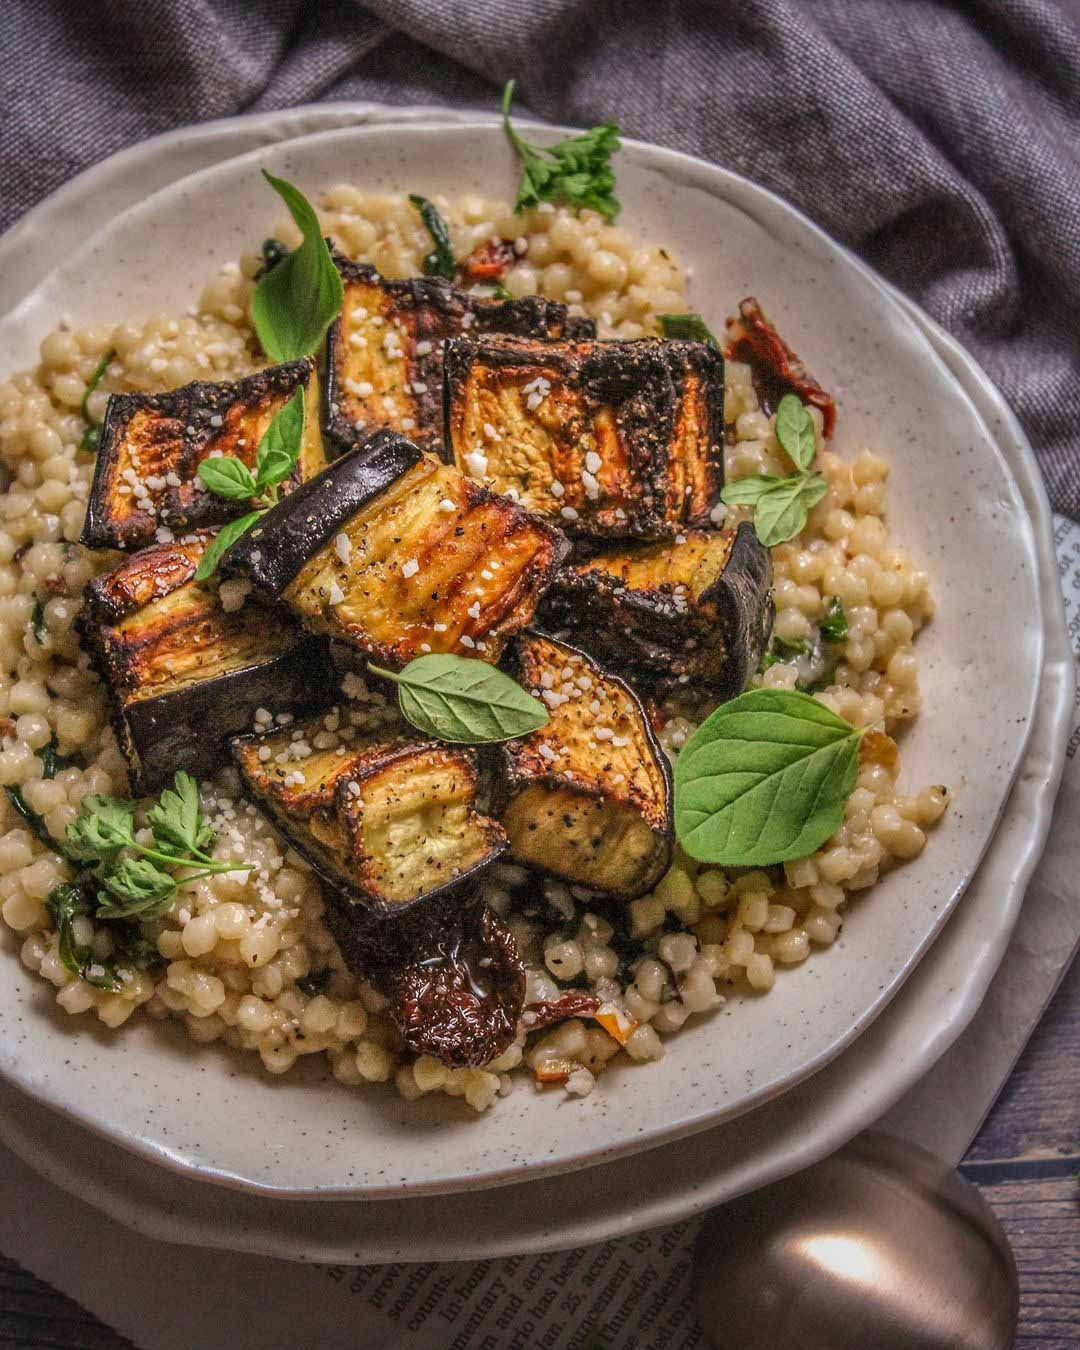 Crispy Roasted Aubergine with Creamy Couscous recipe served on a plate.